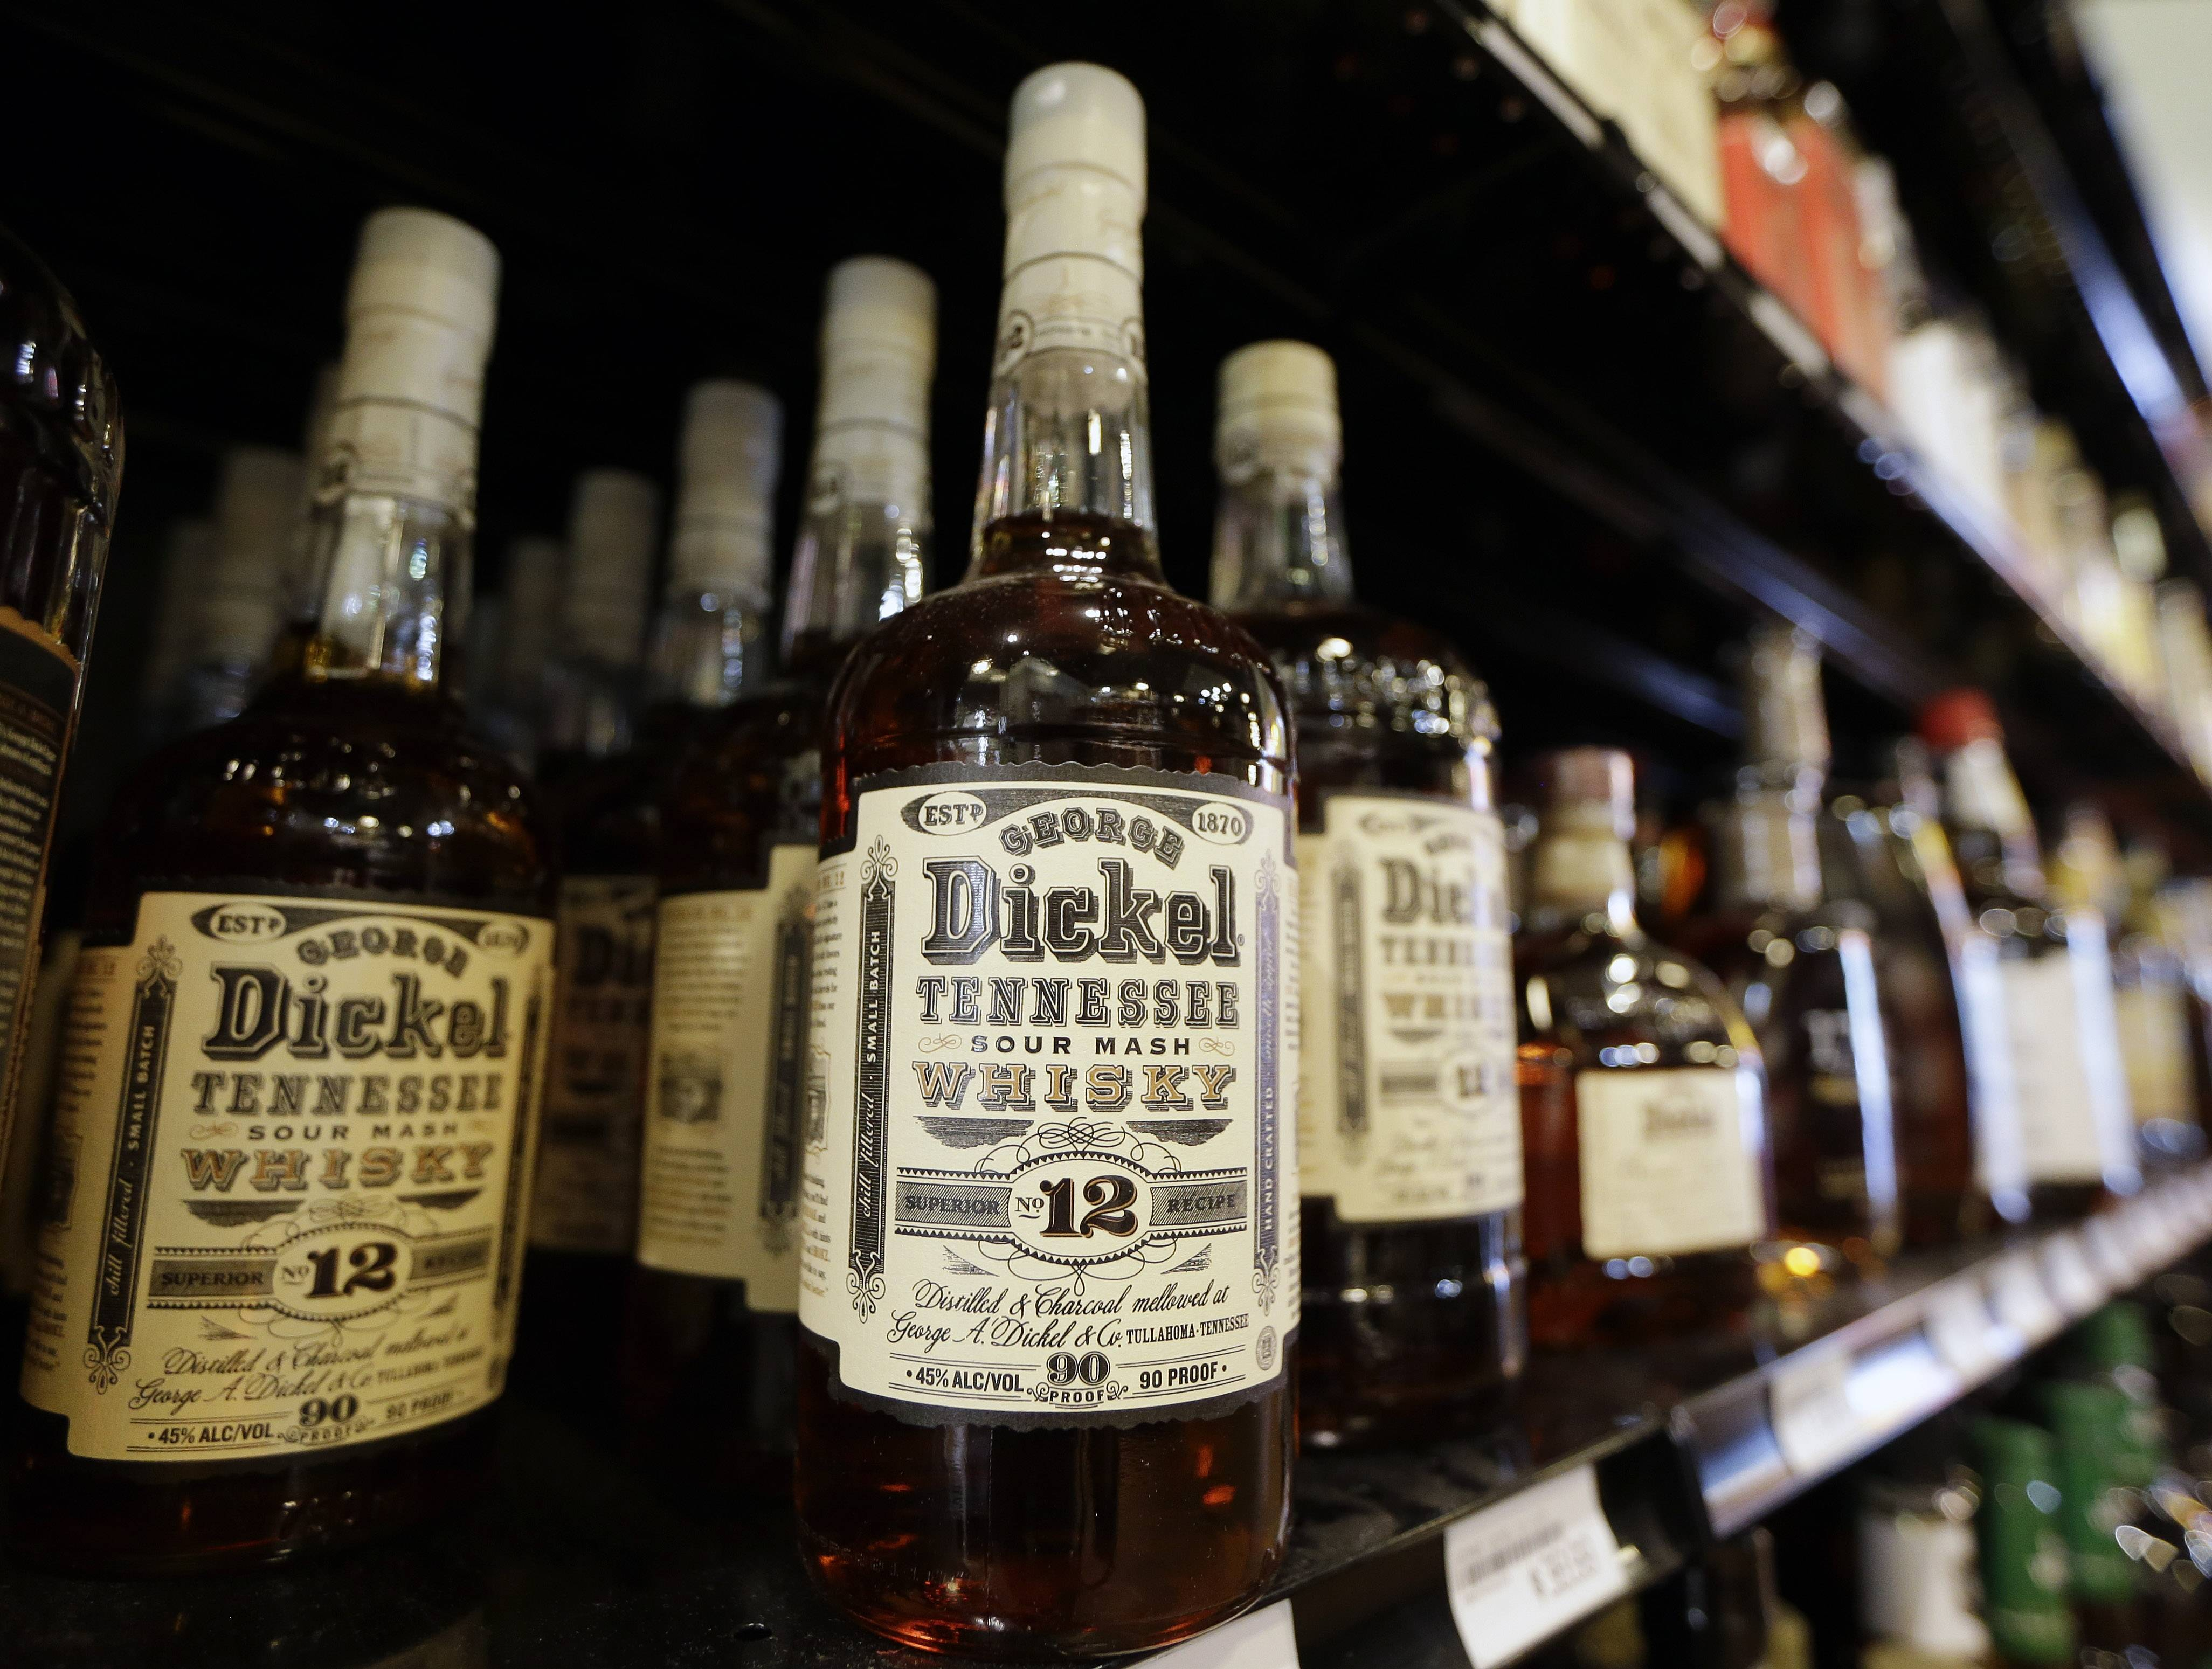 Bottles of George Dickel Tennessee whiskey in a liquor store in Nashville, Tenn. Alcohol regulators ended their investigation into whether George Dickel, a subsidiary of liquor giant Diageo, violated state laws by storing whiskey in neighboring Kentucky.